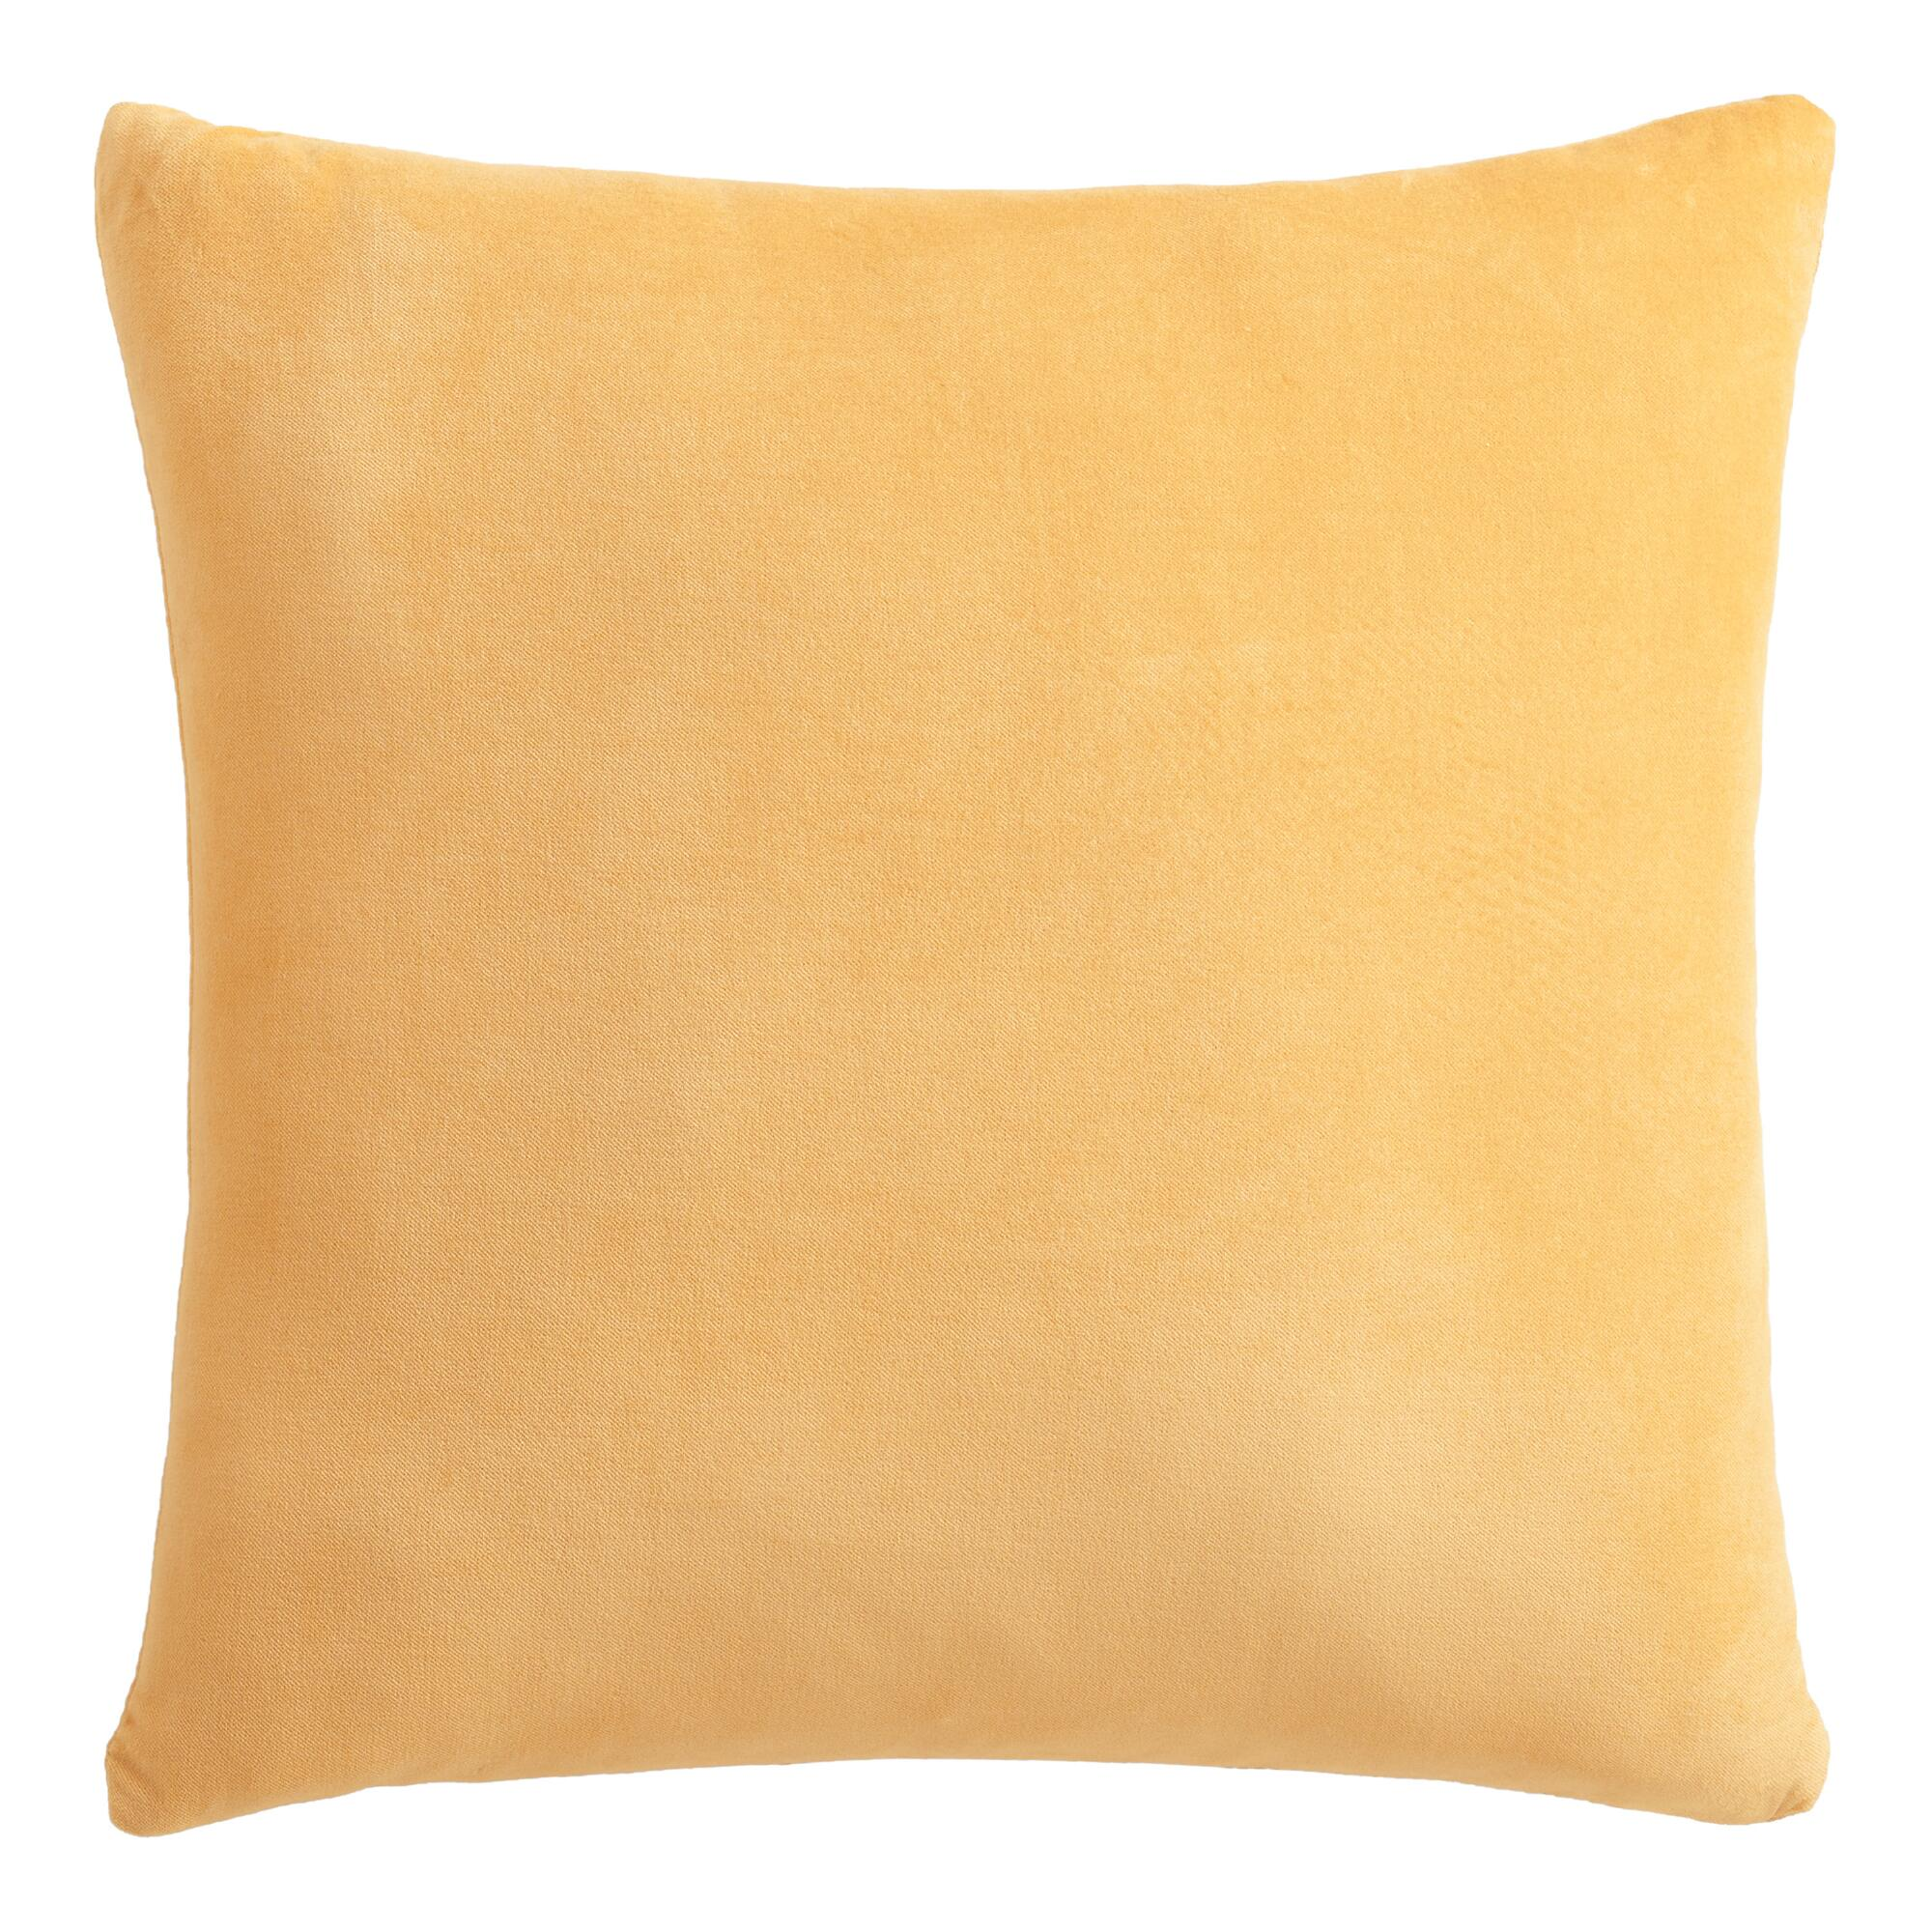 Throw Pillows Gif : Gold Velvet Throw Pillow World Market